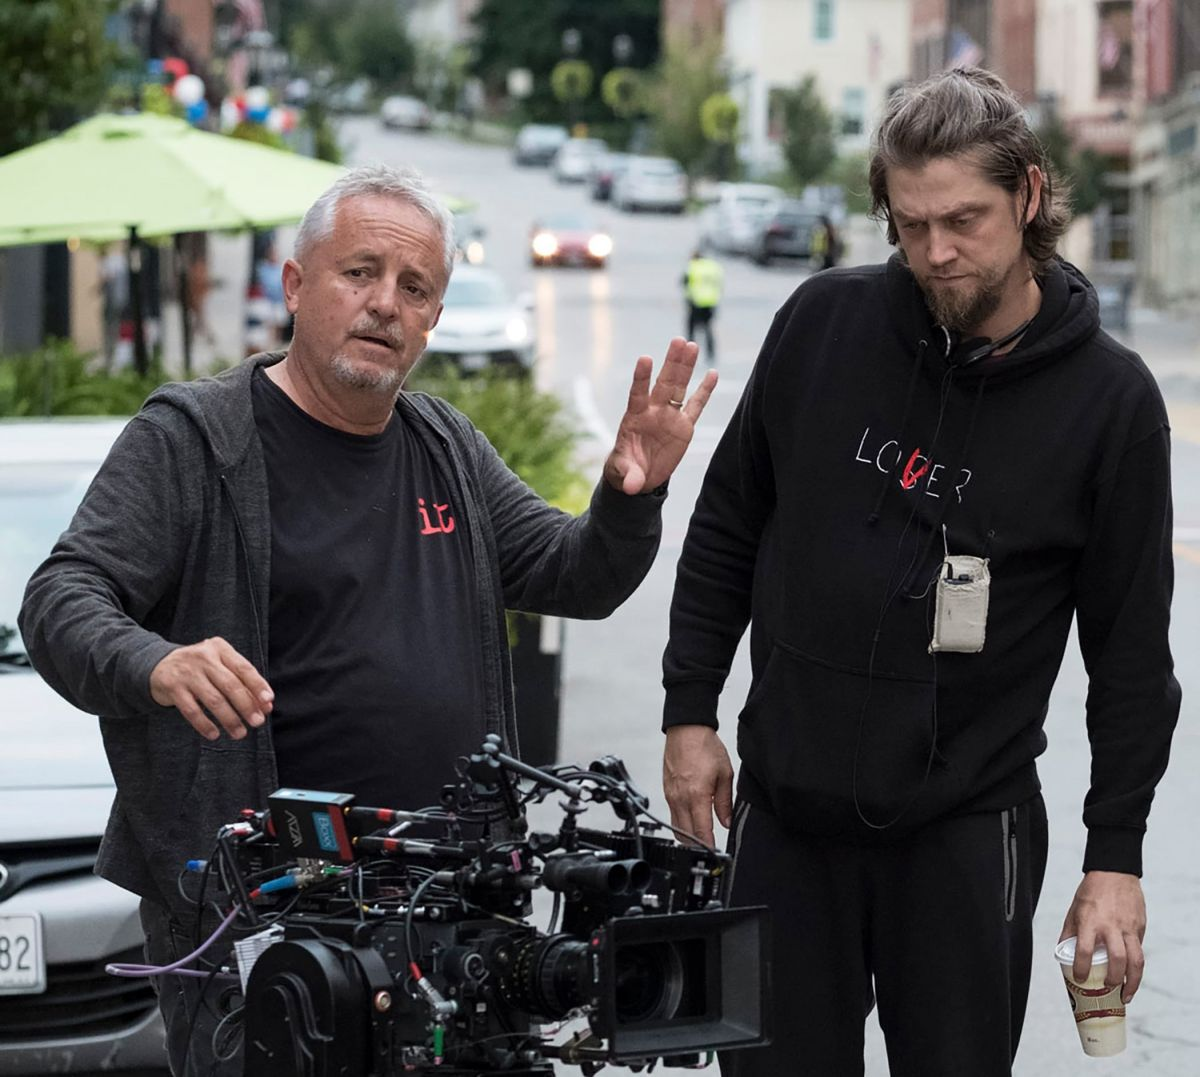 "The Peruvian cinematographer first collaborated with Argentina-born Muschietti on commercials in Spain in the early 2000s, and they went on to make a short together in L.A. More recently, showrunner Carlton Cuse, with whom Varese has shot several pilots, reunited them on the pilot for the Hulu fantasy-drama Locke & Key. ""I had a great experience with him,"" Muschietti says. ""We're friends, we have a good shorthand, and we both speak Spanish. He's incredibly versatile, has a lot of experience, and is very aware not only of his department but of the problems other departments face. He's an amazing team-worker and conciliator. He fights for the movie and for my vision, and I'm so grateful for that."""